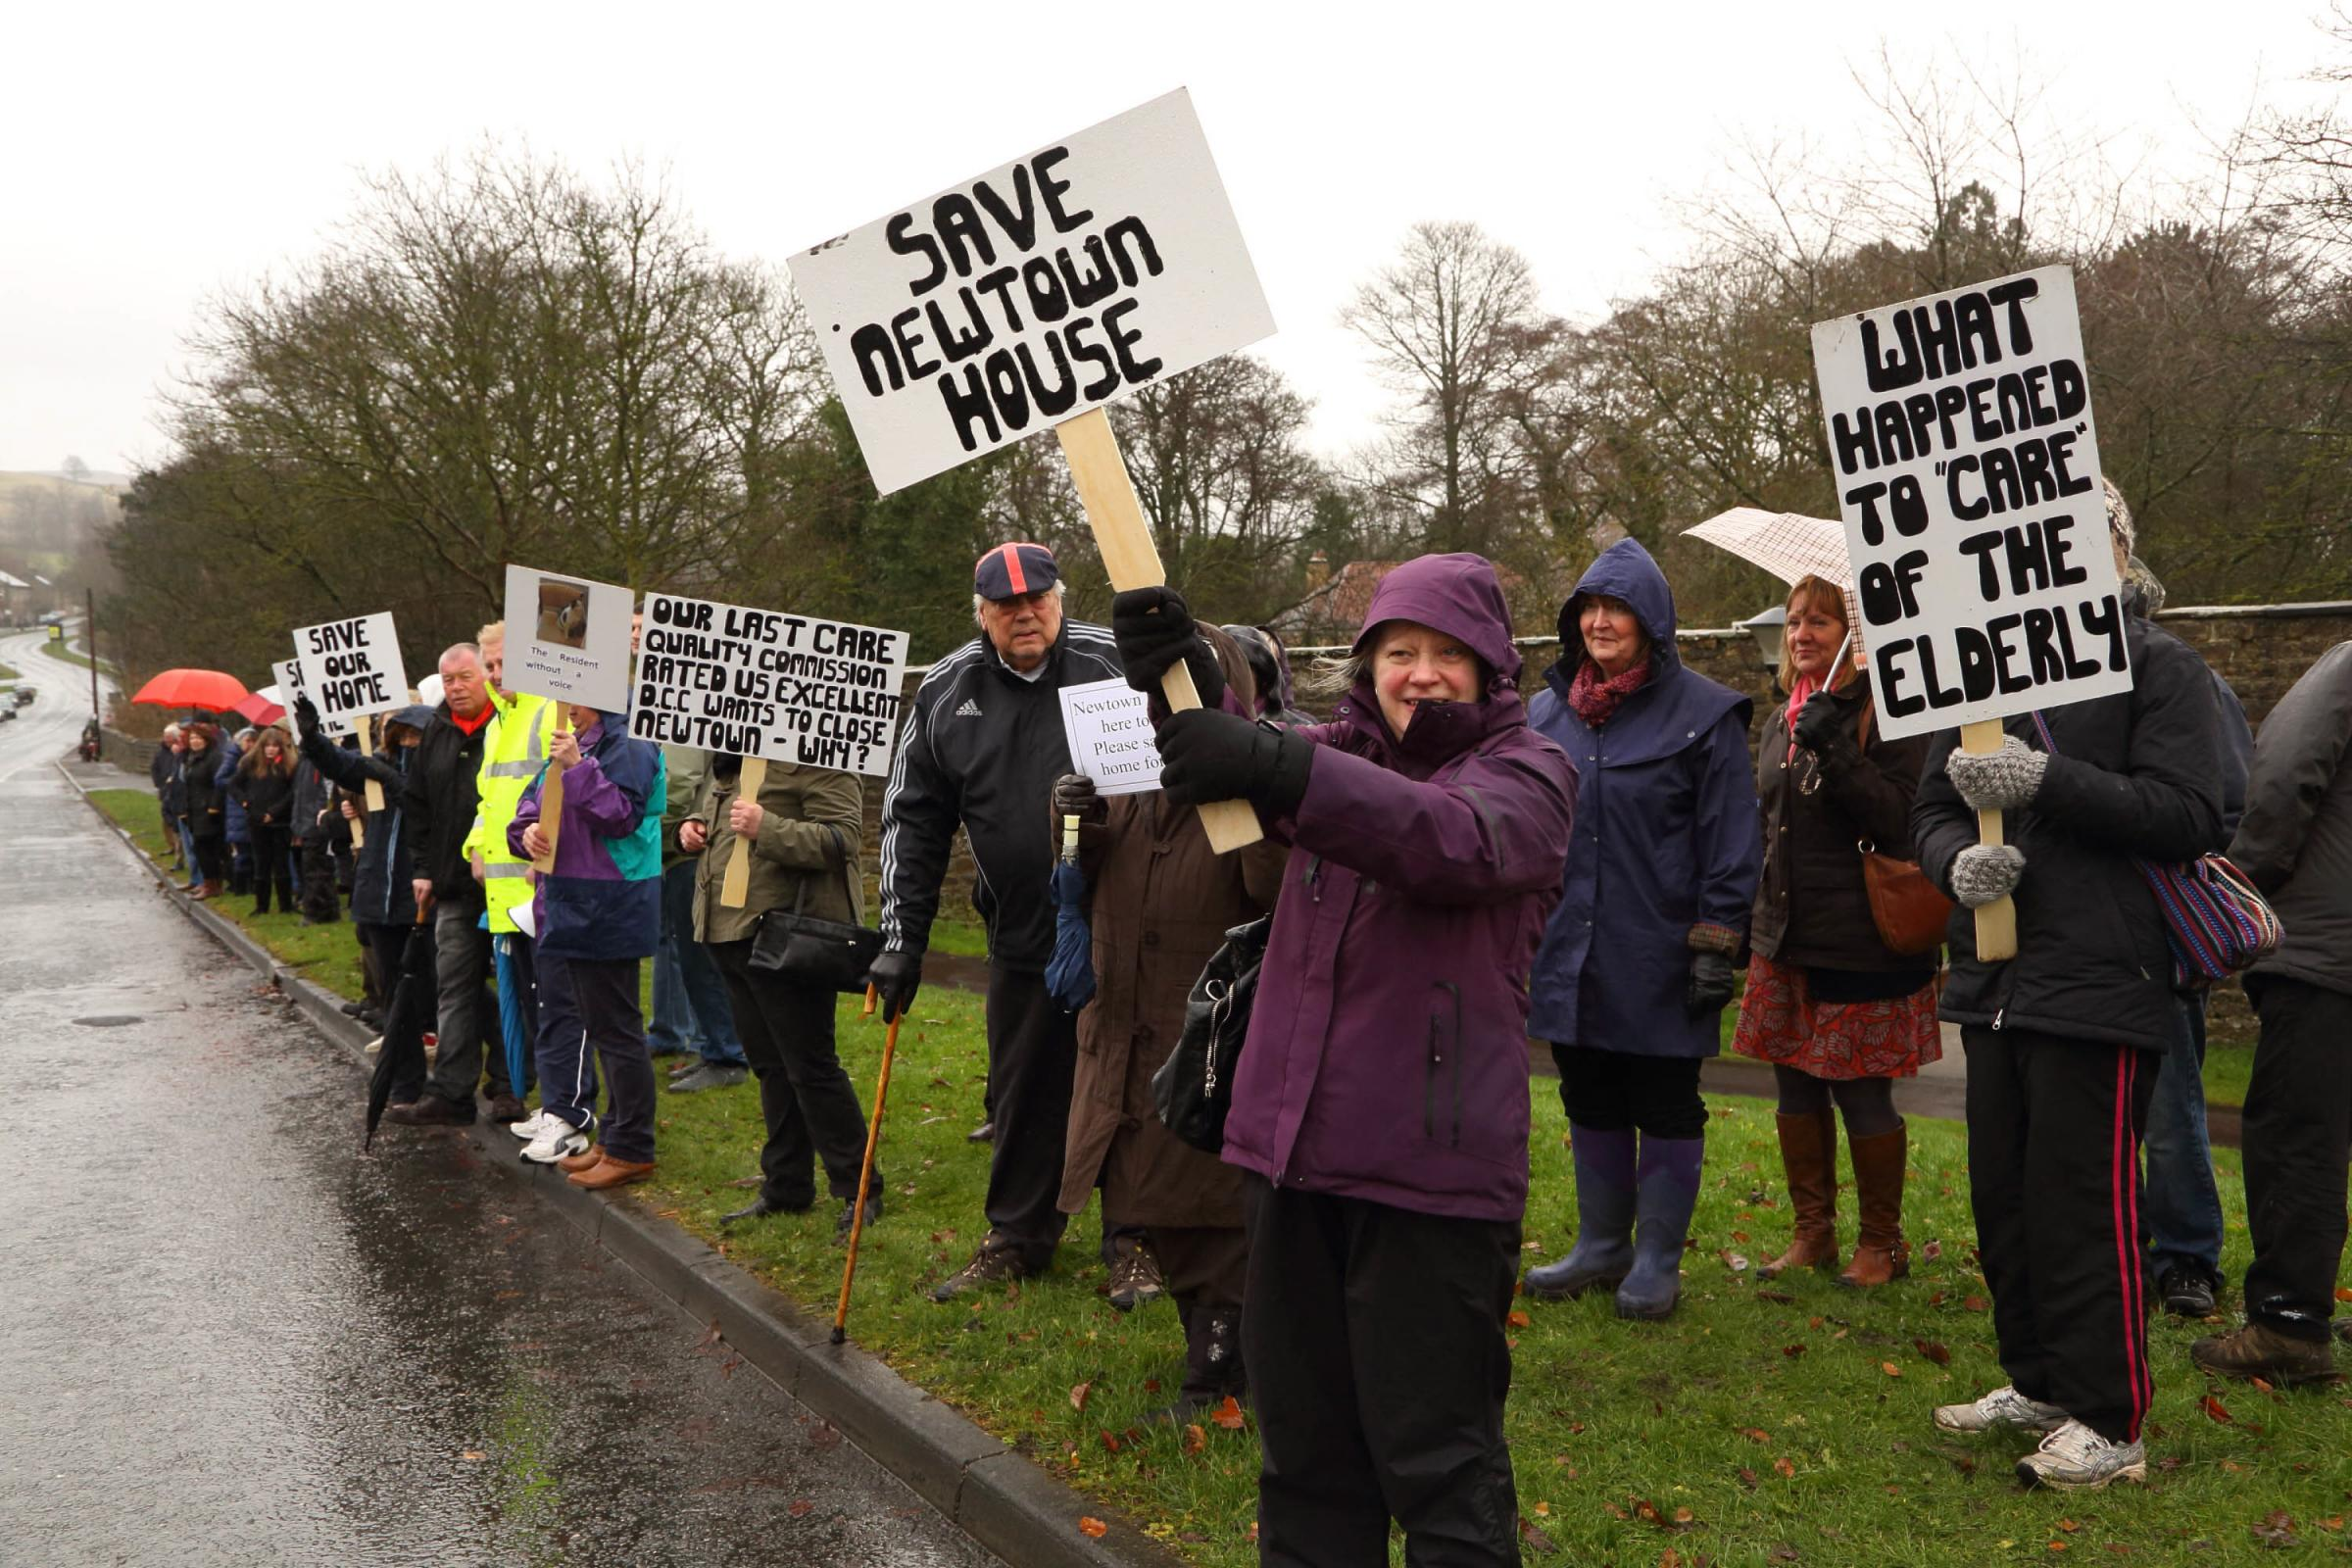 CLOSURE VOTE: A previous protest to save Newtown House care home in Stanhope